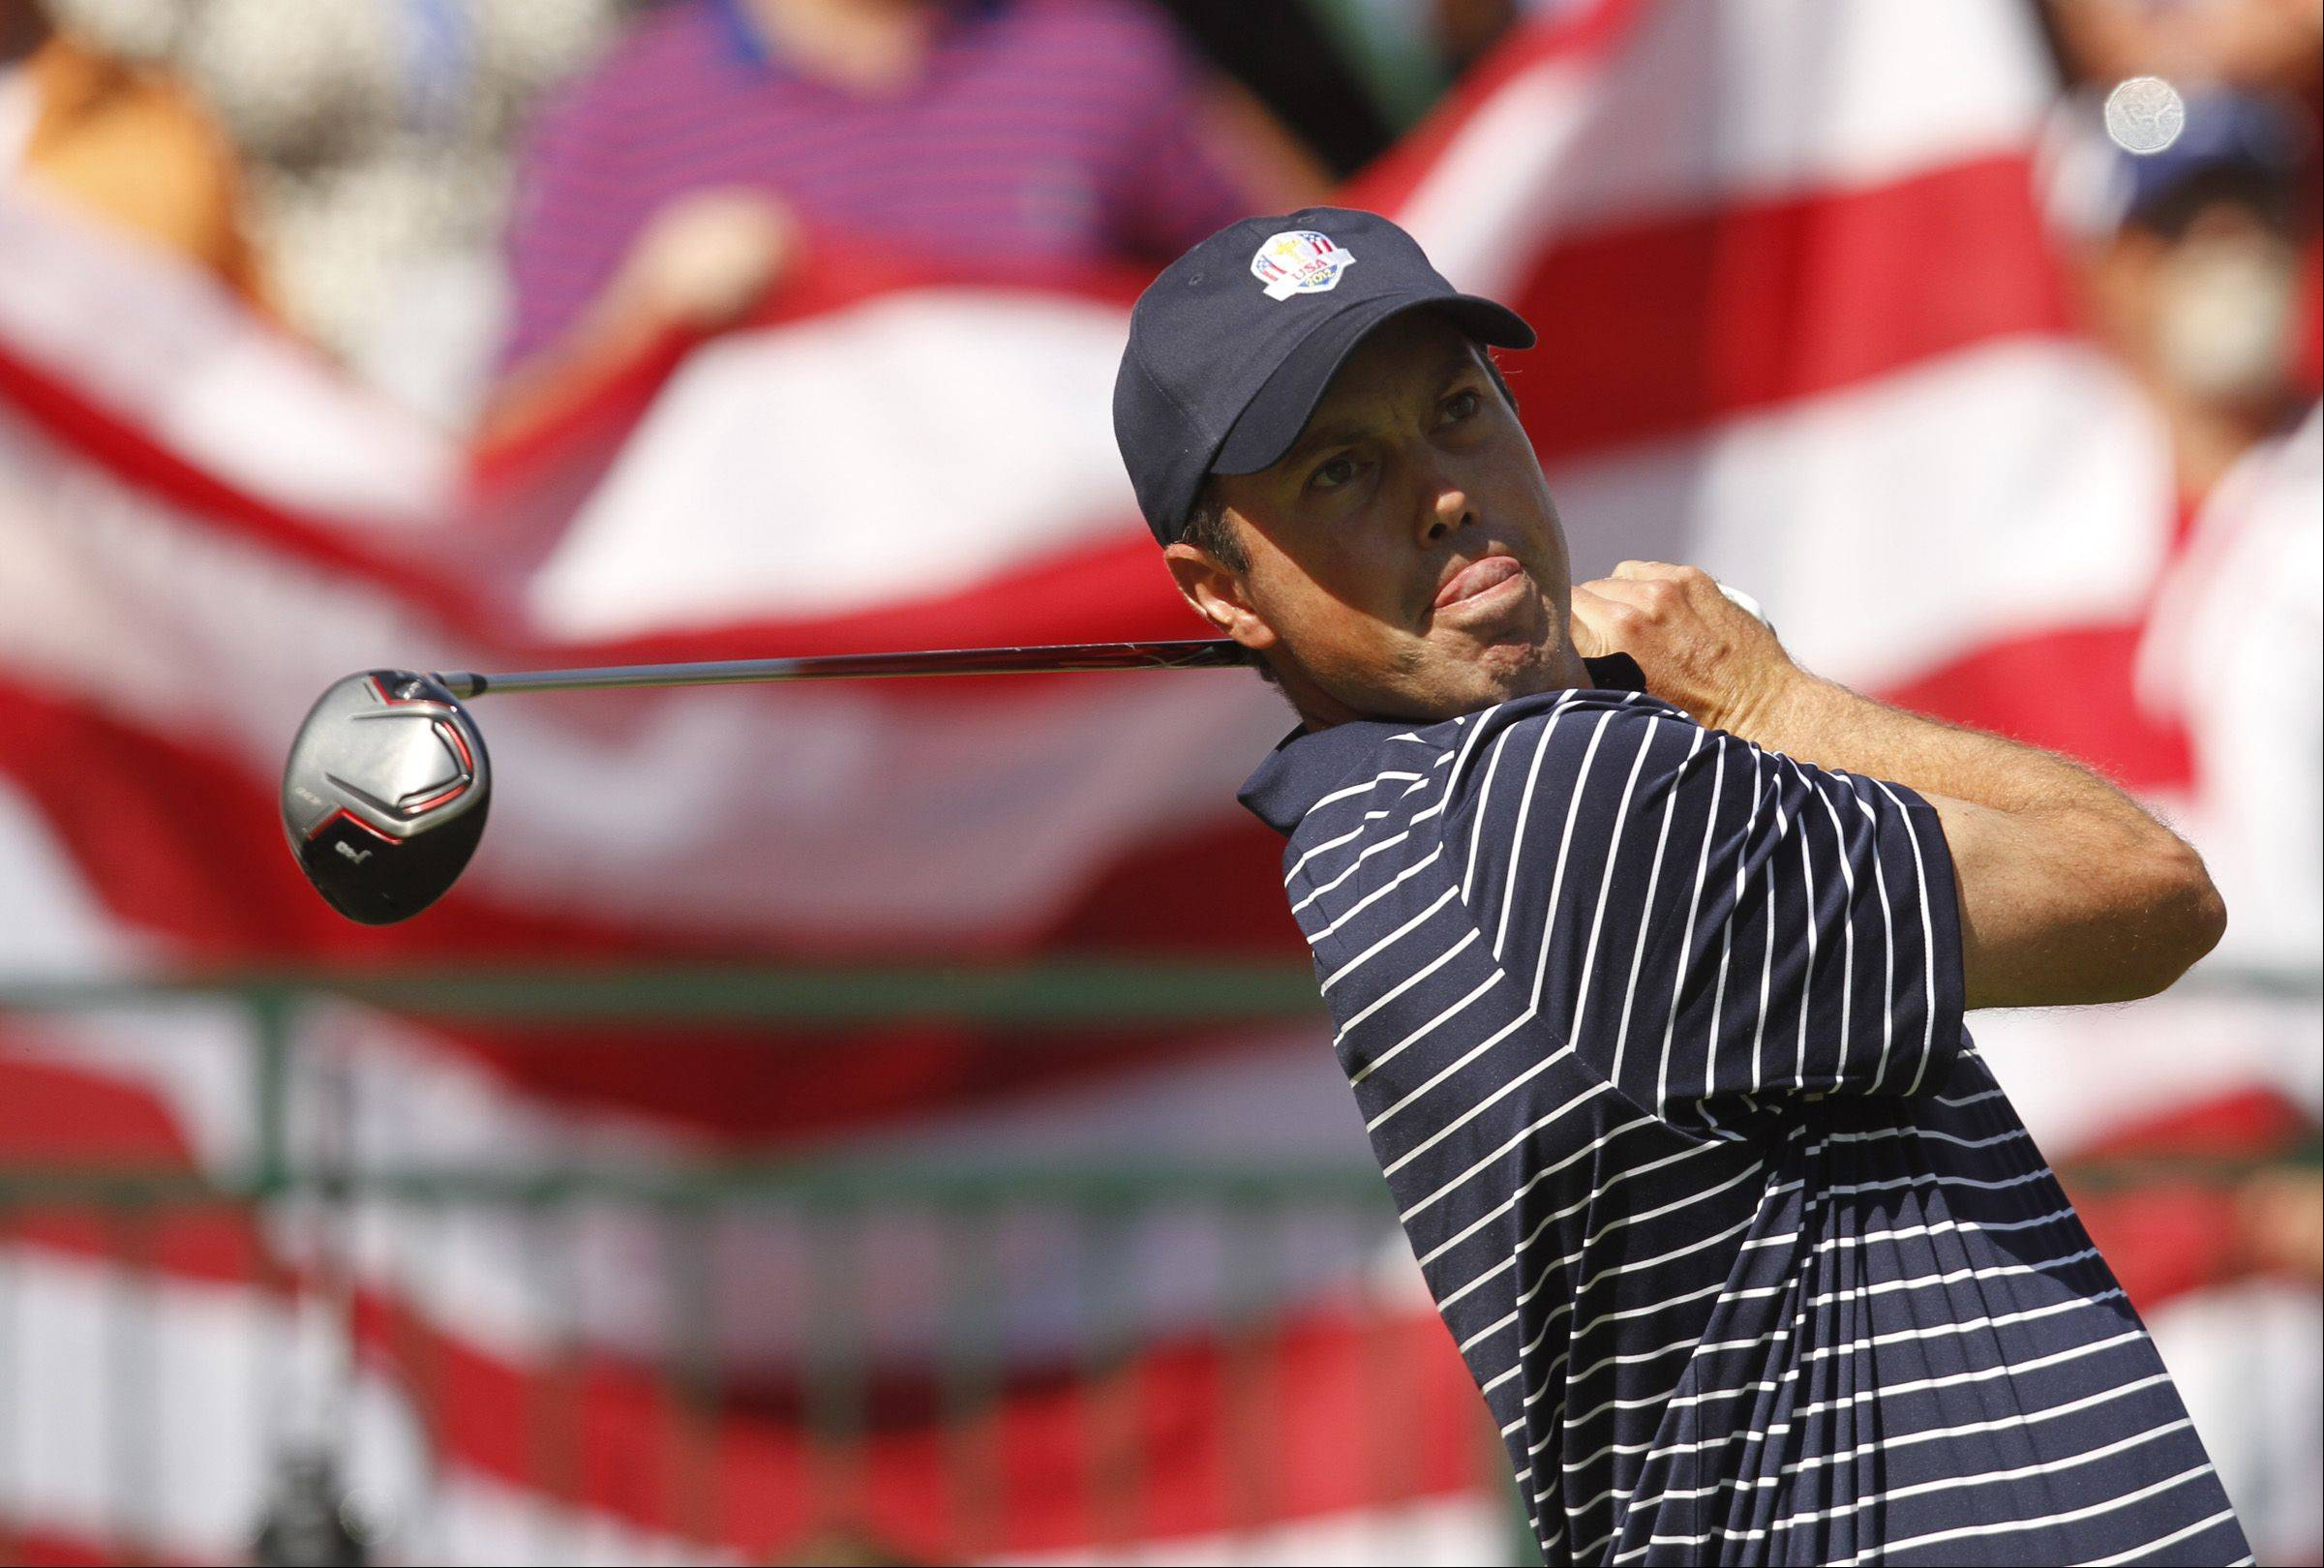 Team USA's Matt Kuchar tees off with Old Glory behind him Saturday afternoon.